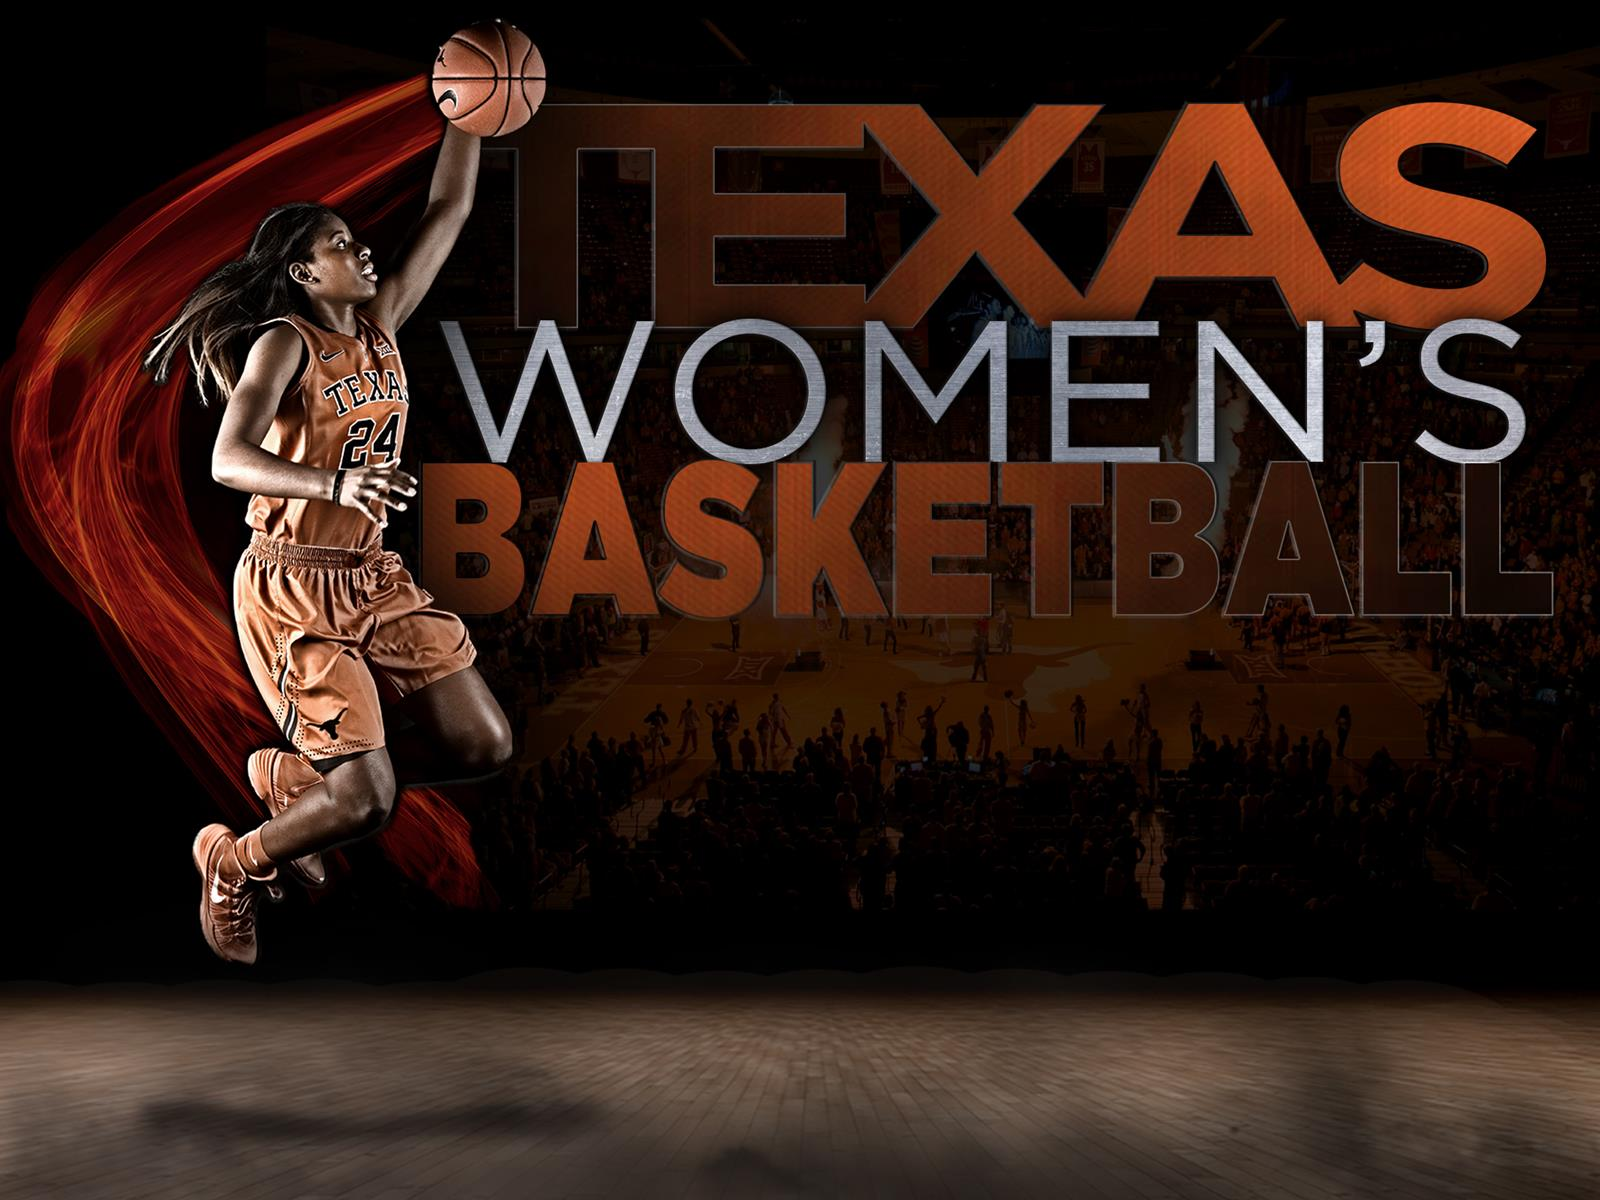 The ficial Website of the University of Texas Athletics